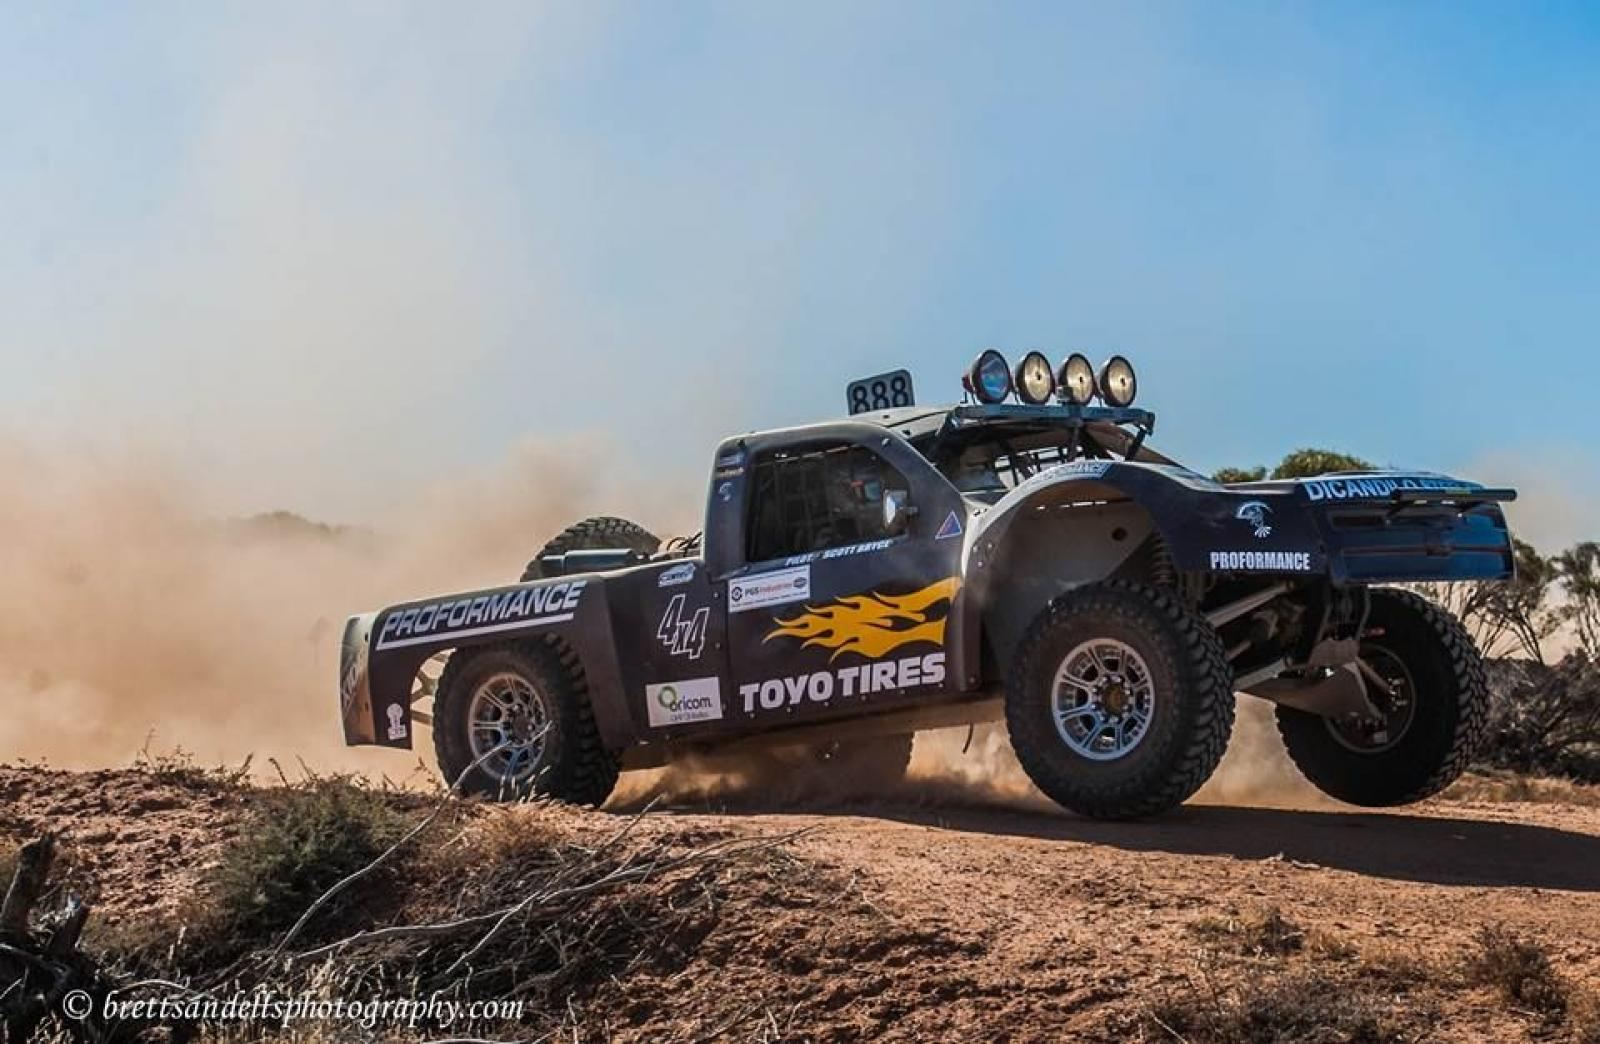 4X4 Desert Racing Truck - Nascar Engine - IFS - IRS - 2